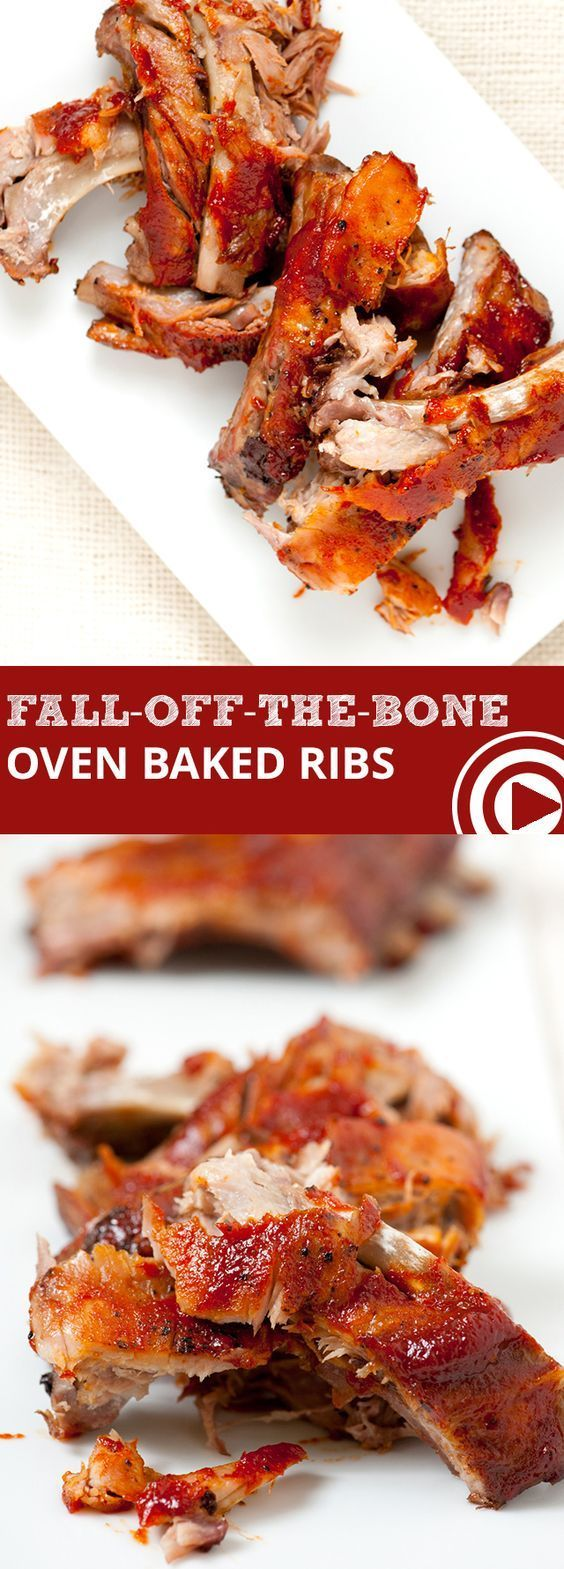 Easy Fall-Off-The-Bone Oven Baked Ribs with Video - Baking low and slow is the secret to these fall-off-the-bone oven baked ribs. Most of the recipe time is sitting back and relaxing waiting while the ribs bake. From inspiredtaste.net | @inspiredtaste #ri